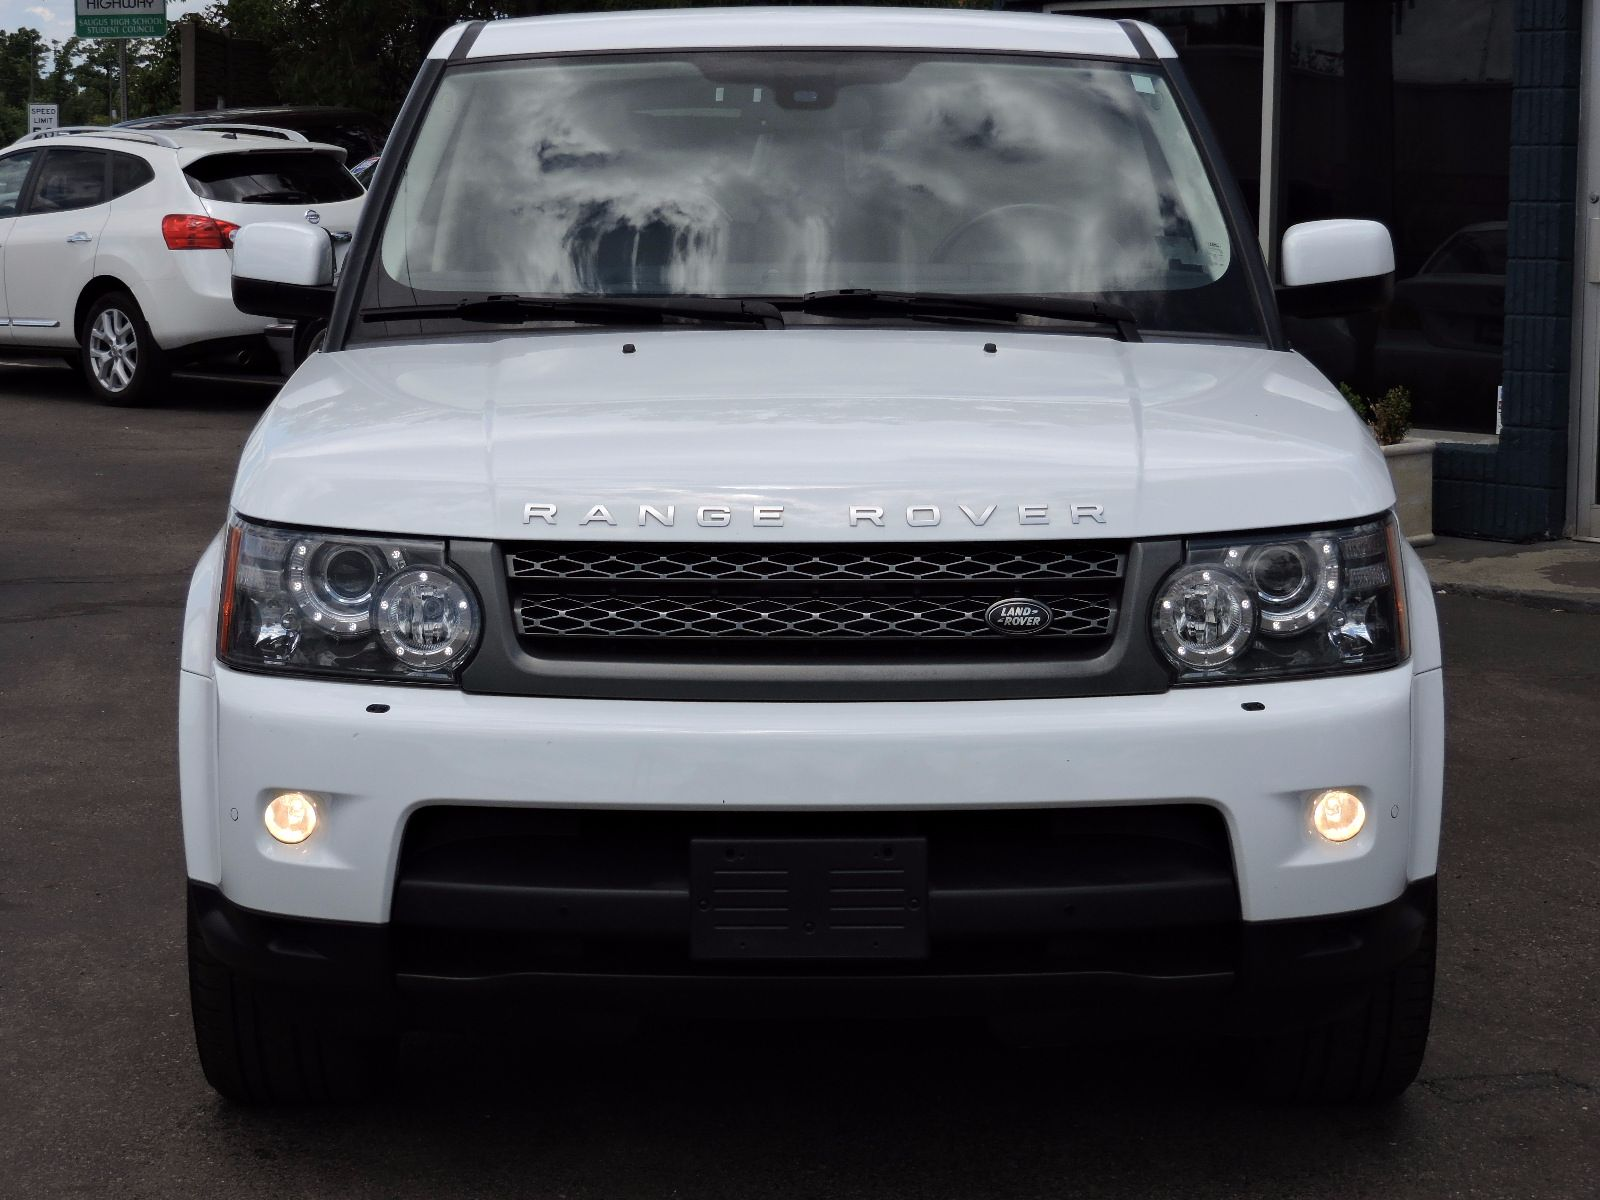 2011 Land Rover Range Rover Sport HSE - All Wheel Drive - Navigation